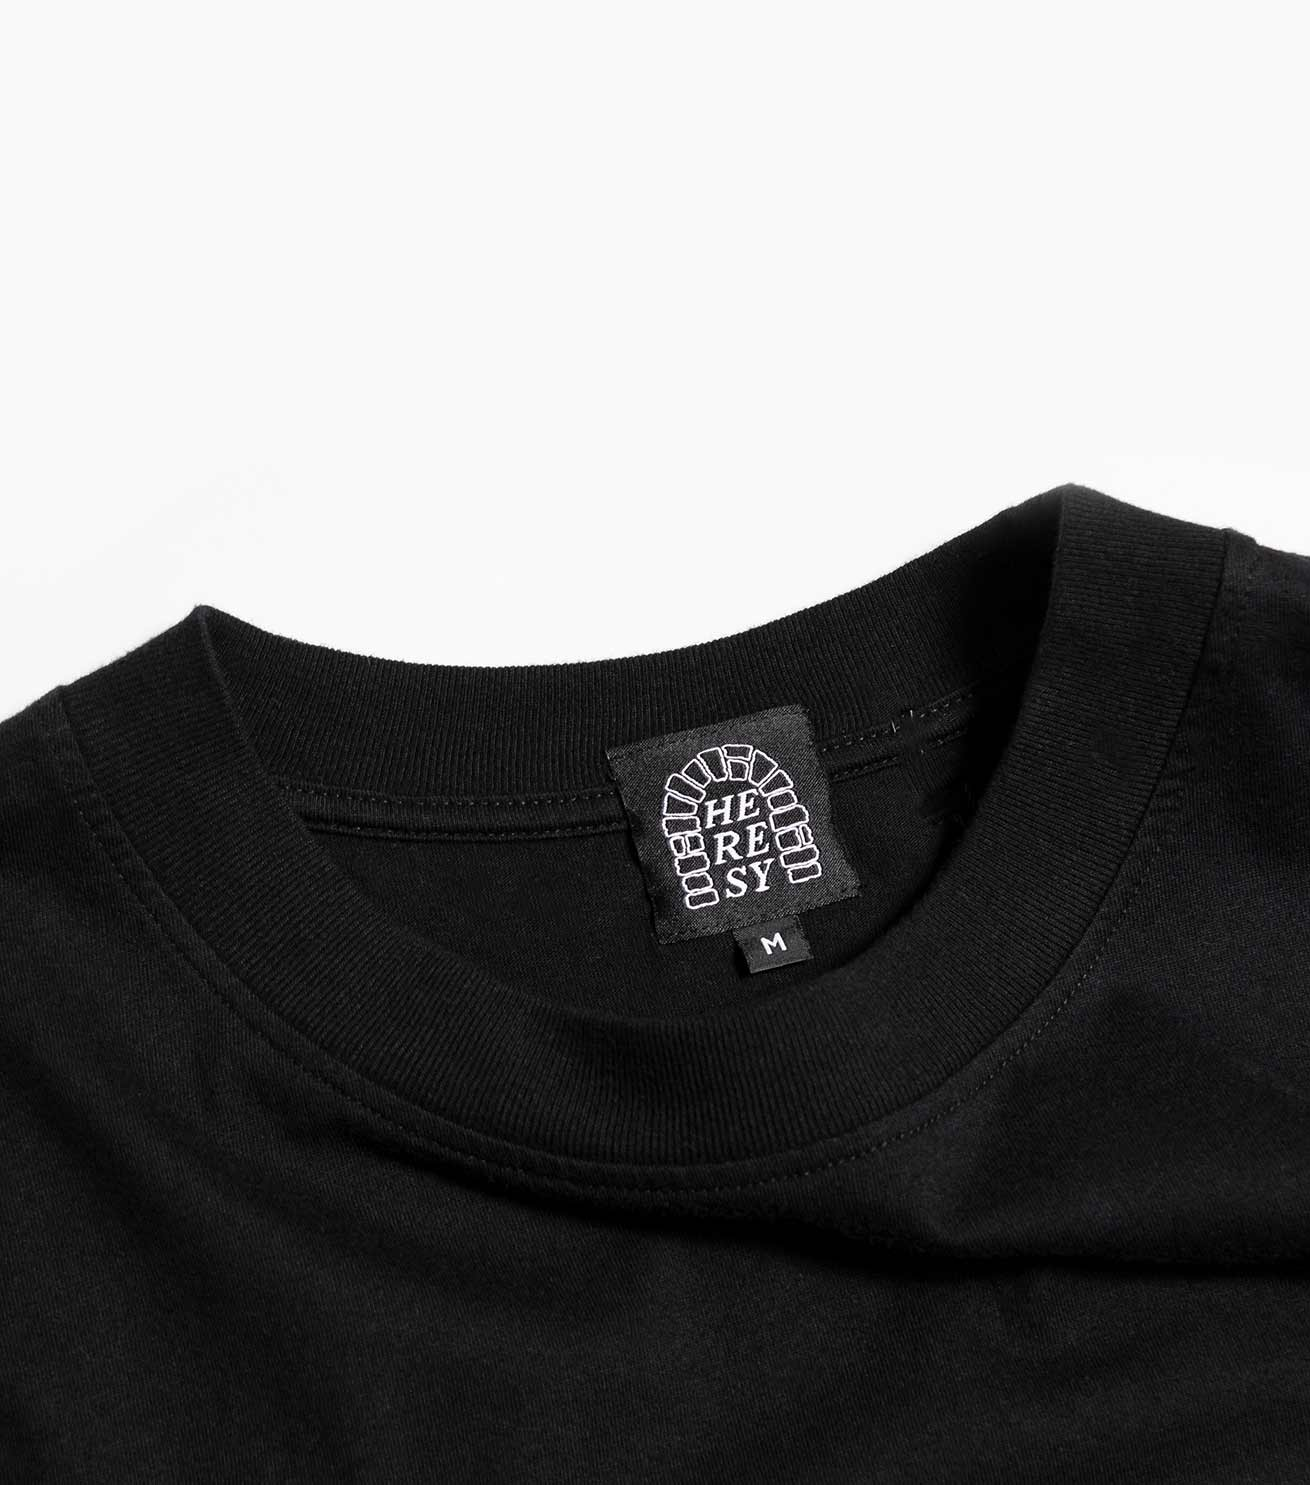 Heresy Hill Giant T-Shirt - Black